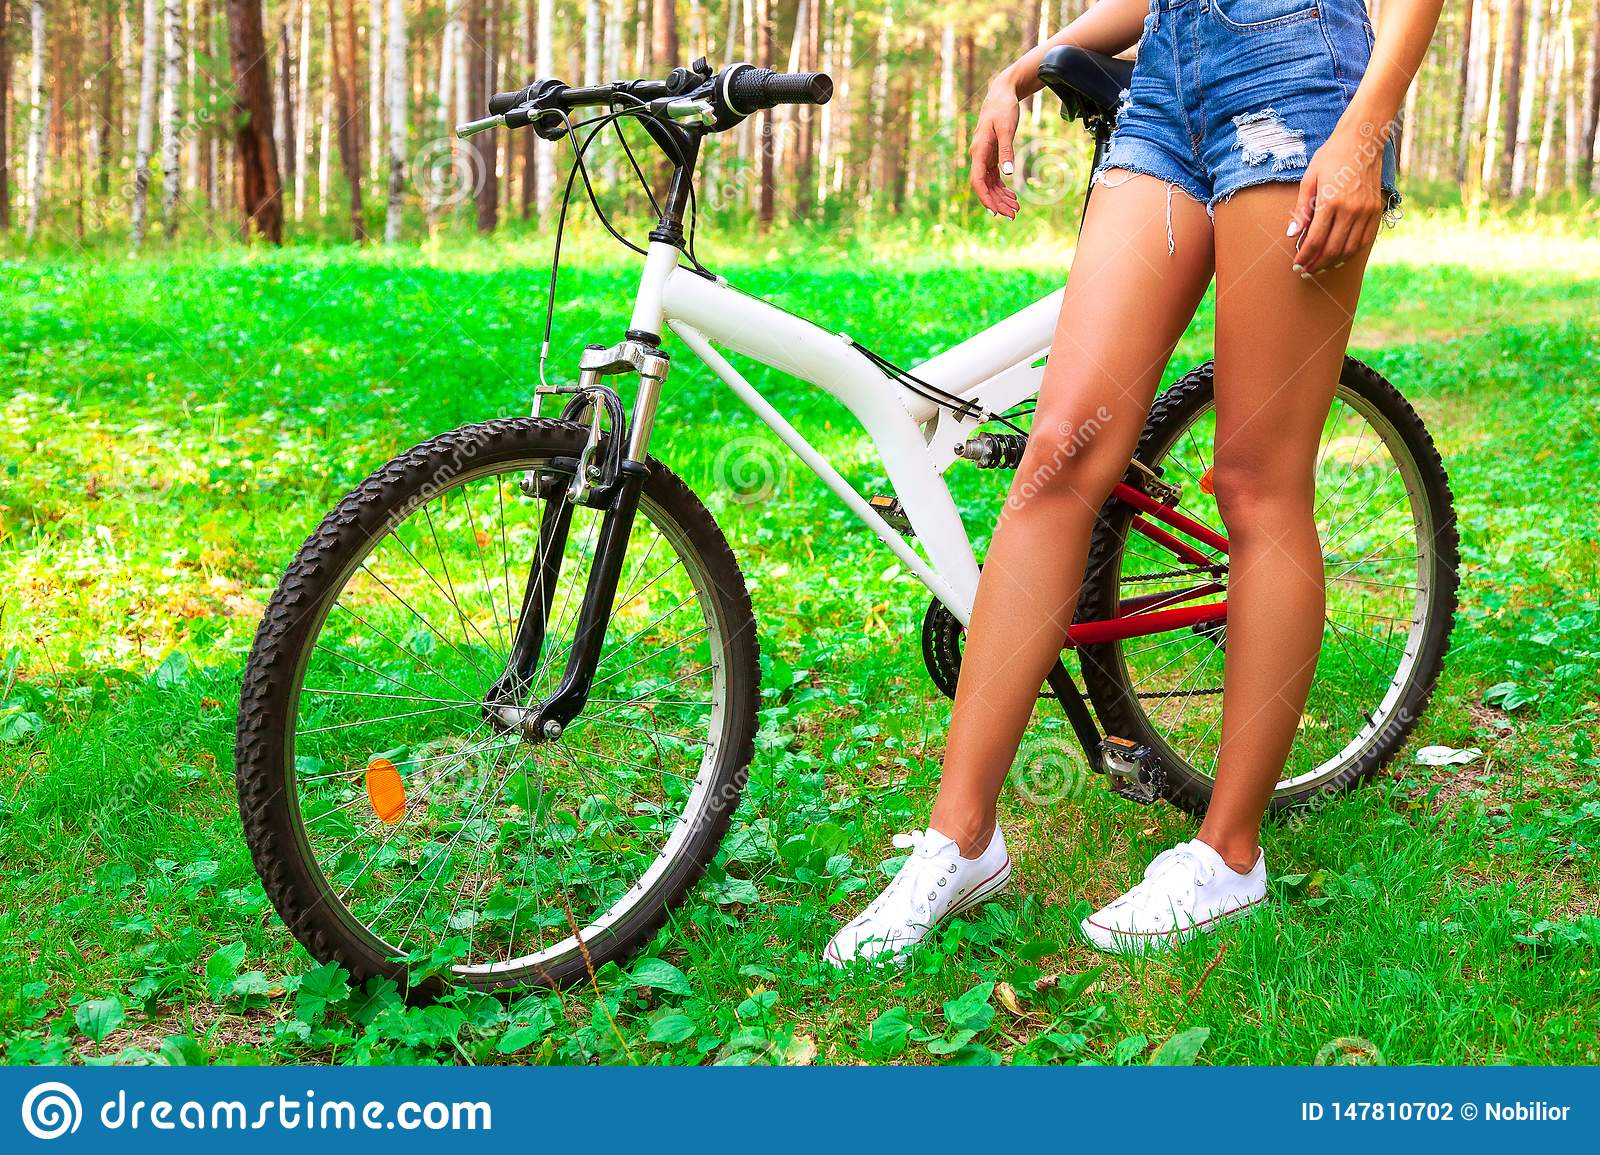 Young woman in shorts riding a sportbike